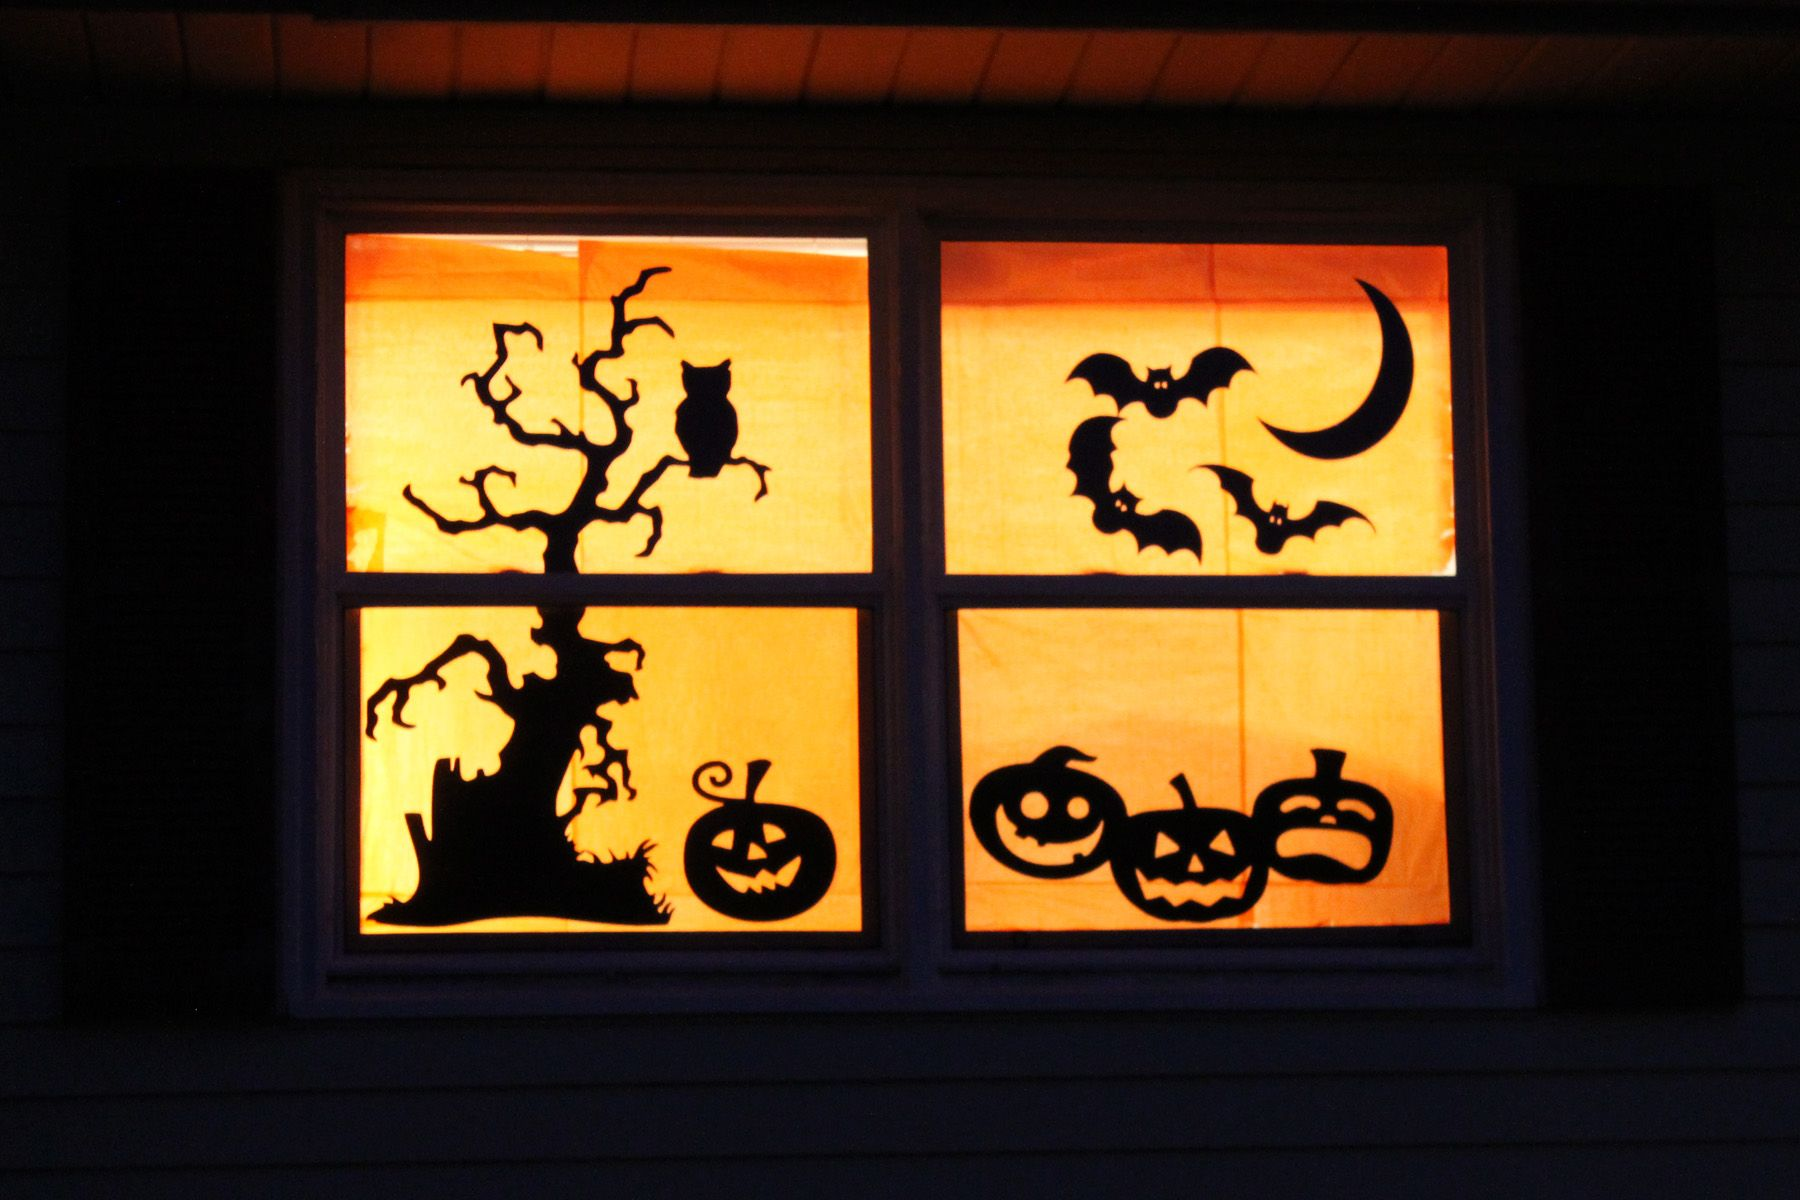 Halloween Fensterdeko Silhouettes Are Great Halloween Window Decorations And Can Really Jazz Up Your Home … | Halloween Window Silhouettes, Halloween Window Decorations, Halloween Window